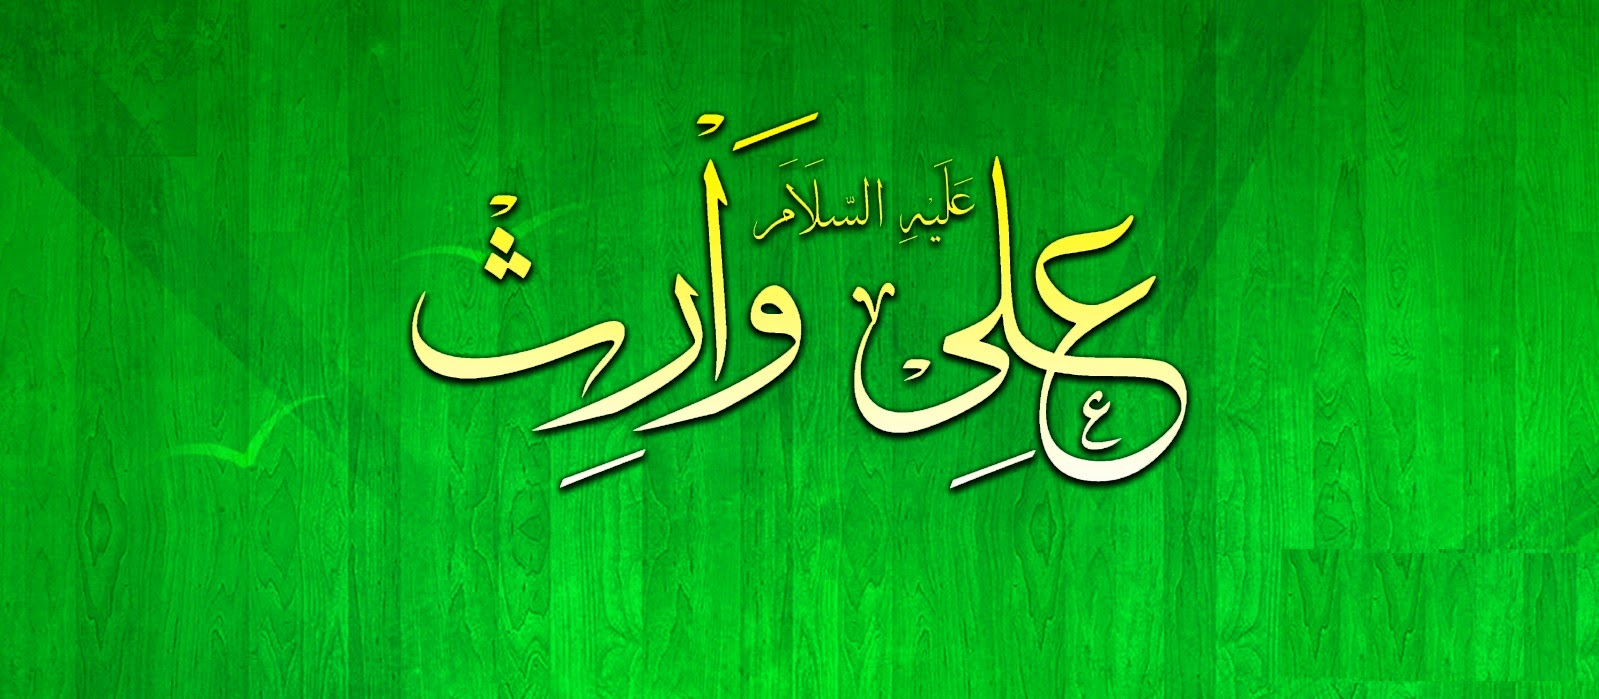 ya ali as madad wallpaper l facebook cover snipping world